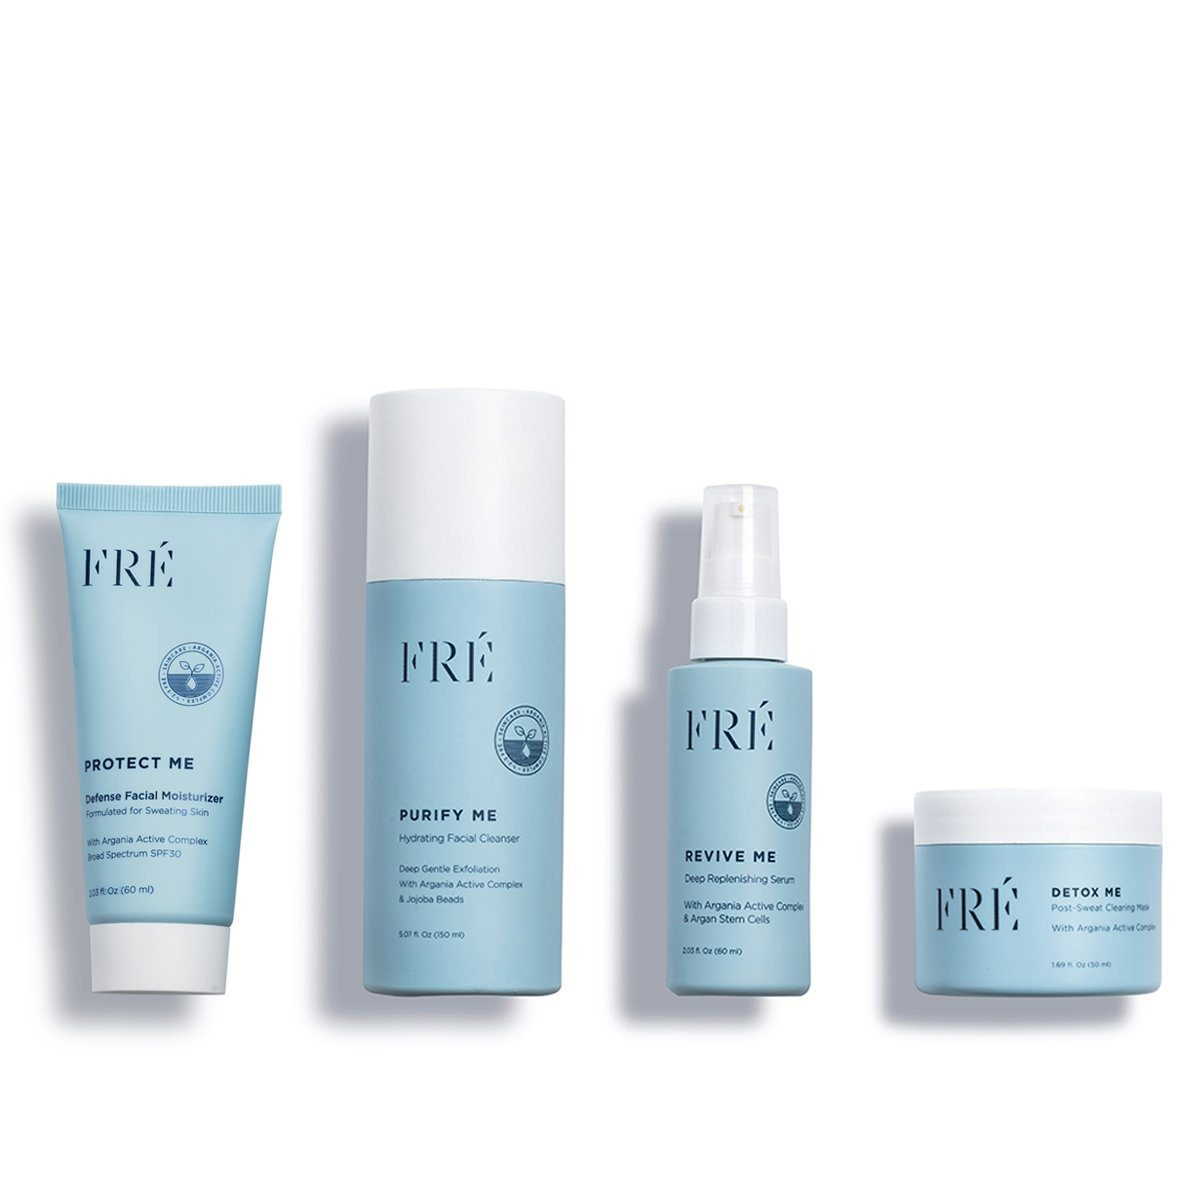 Use the Discount Code: MKCfor 15% off ALL FRÉ Skincare Products - *Applicable to All Product Lines